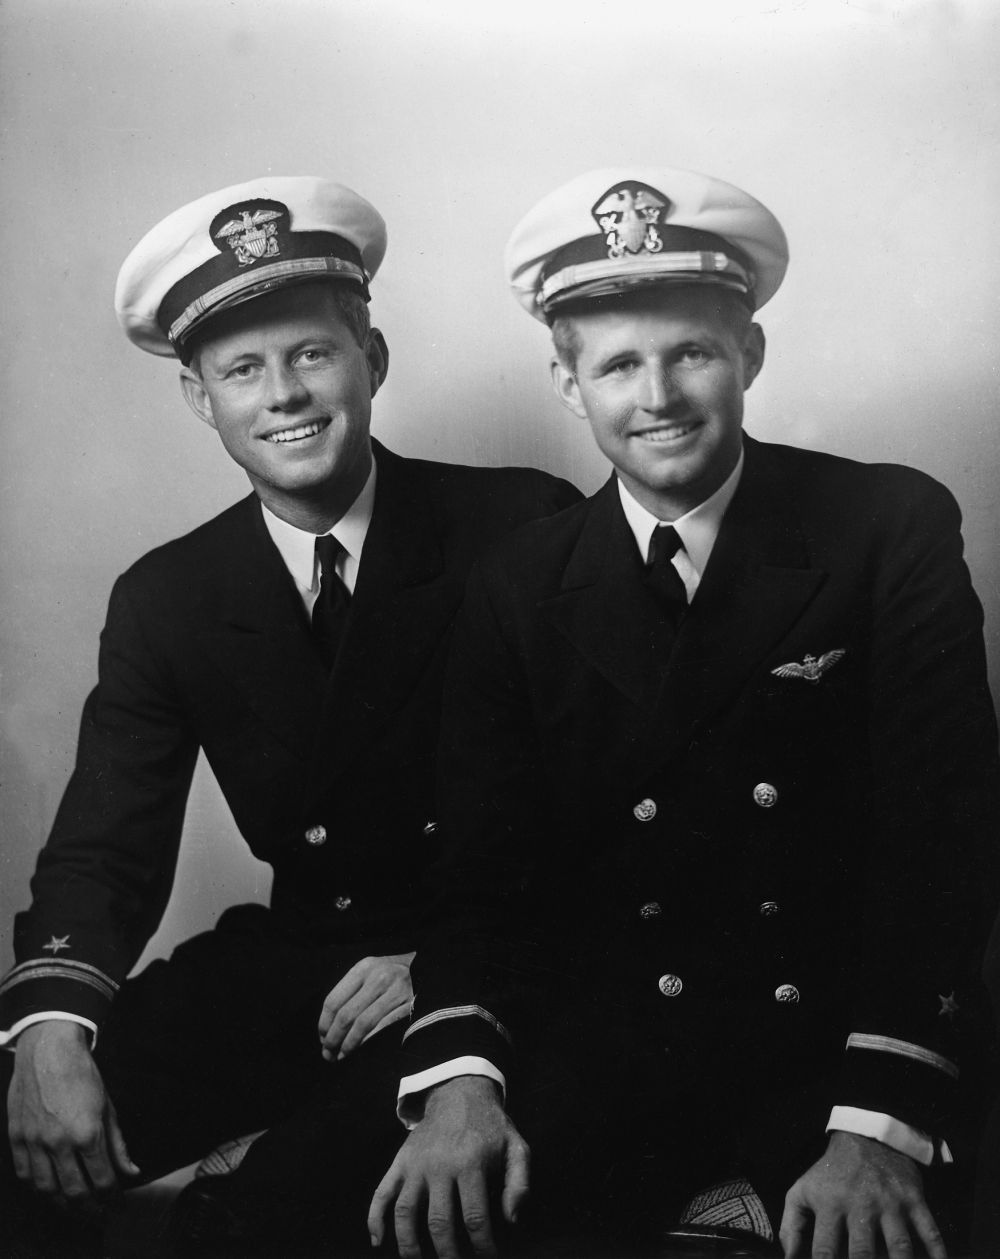 John F. Kennedy, left, with his older brother, Joseph P. Kennedy Jr., in 1942. JFK fought in the Pacific, while Joe Kennedy Jr. flew over Europe.